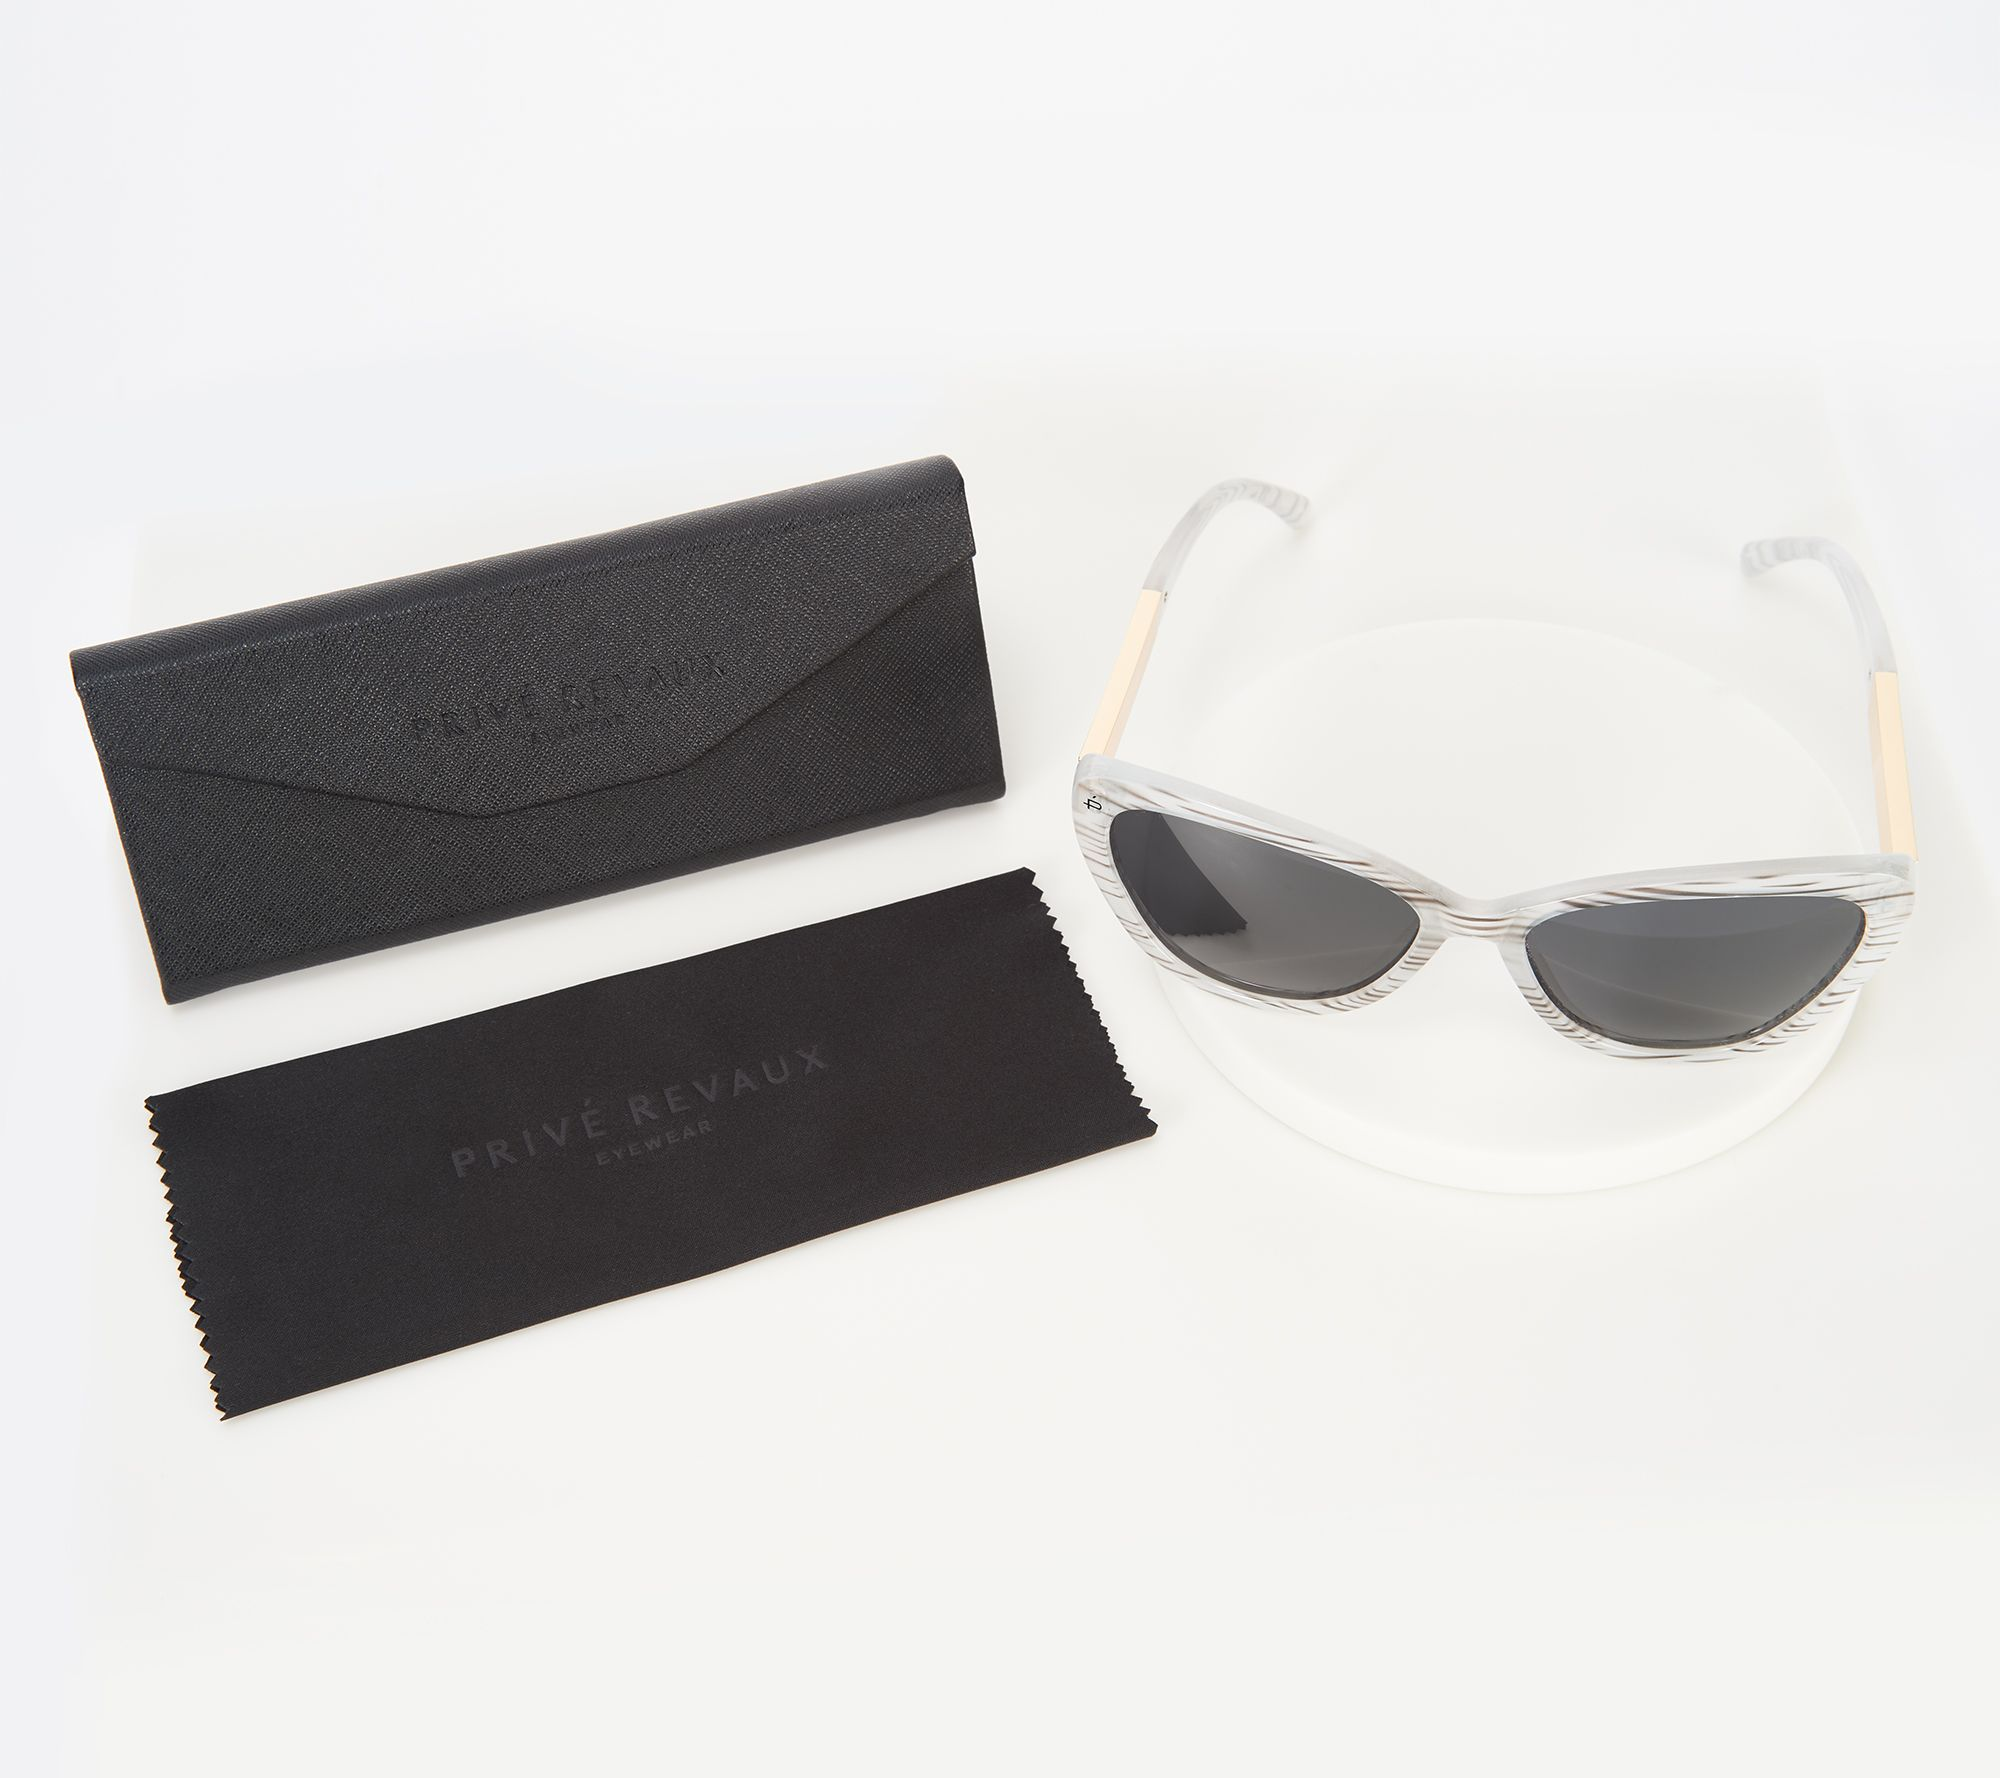 5dc06a4e639 Prive Revaux The Hepburn 2.0 Cat-Eye Polarized Sunglasses - Page 1 — QVC.com